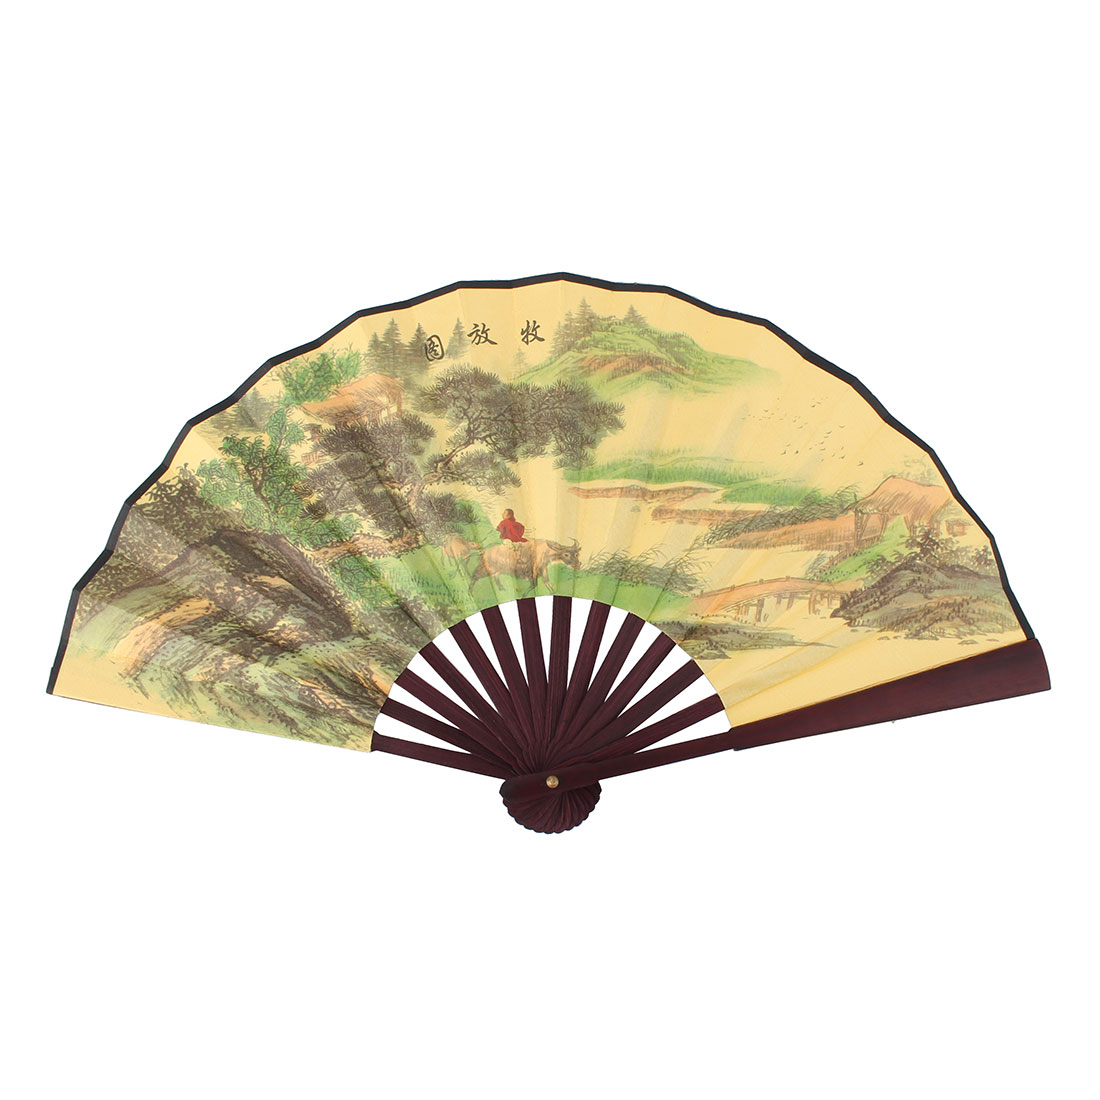 Wooden Ribs Poetry Landscape Painting Chinese Character Hand Folding Fan Yellow